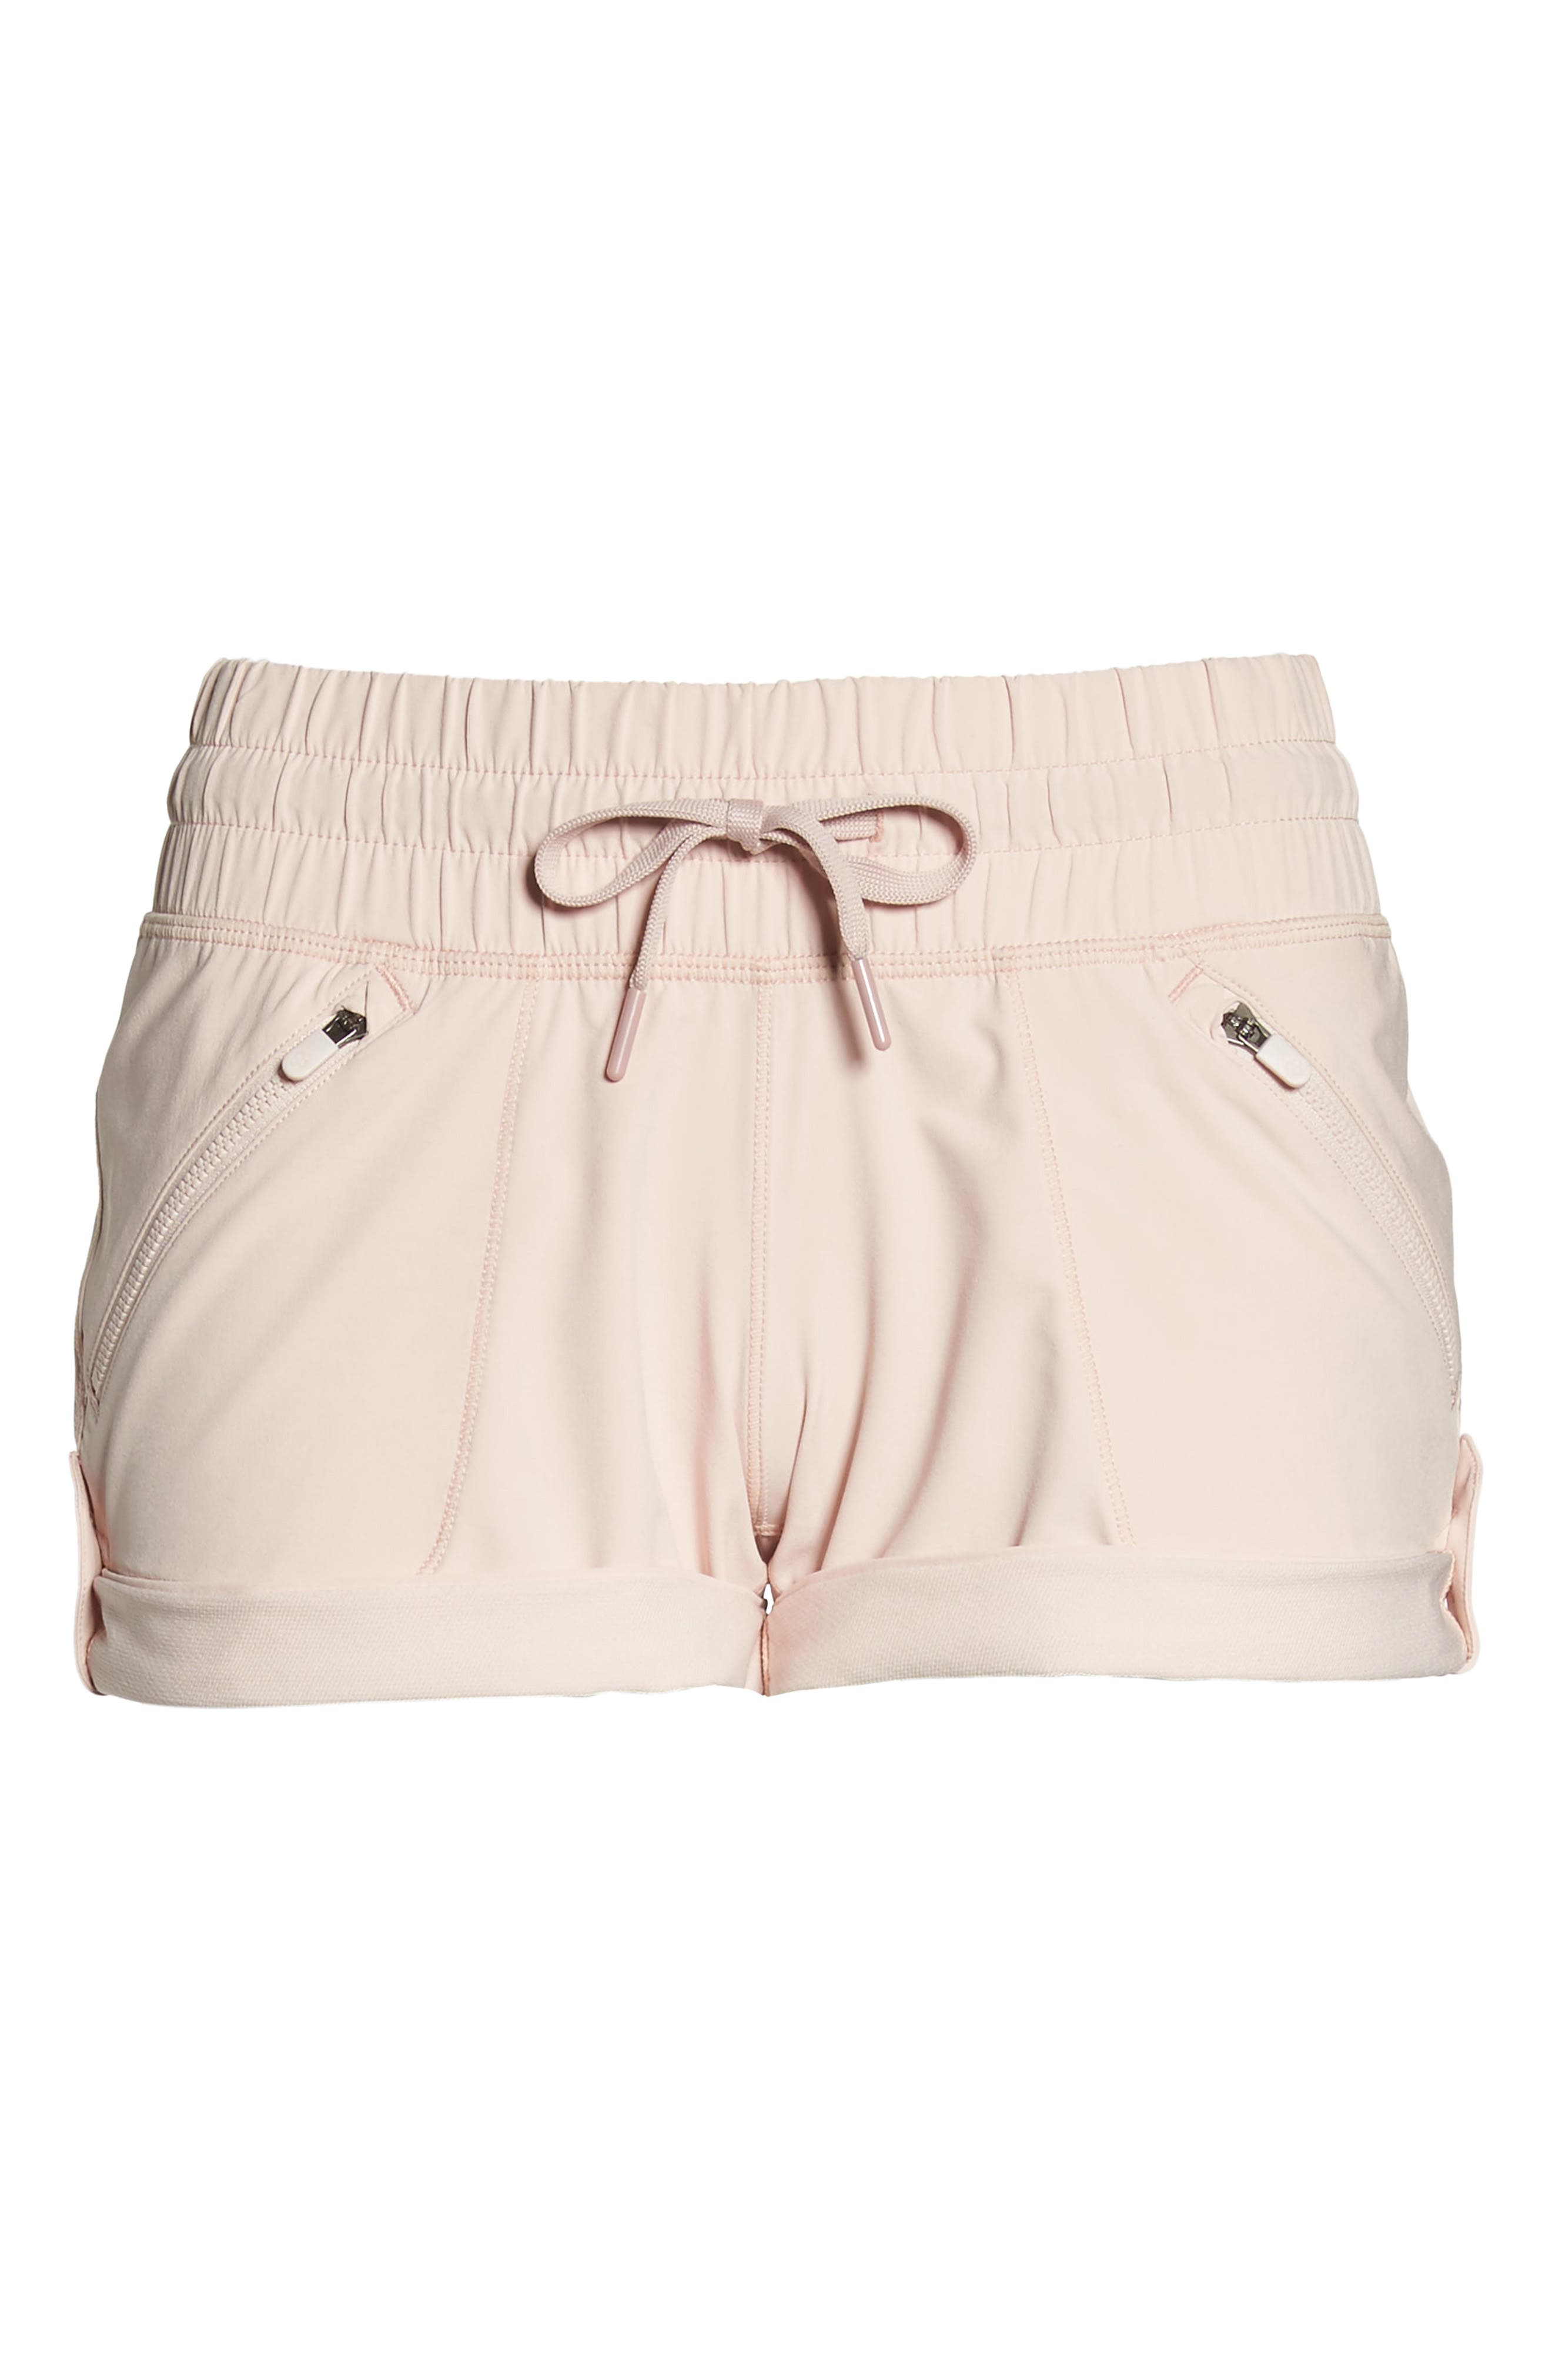 Switchback Shorts,                             Alternate thumbnail 6, color,                             Pink Sepia